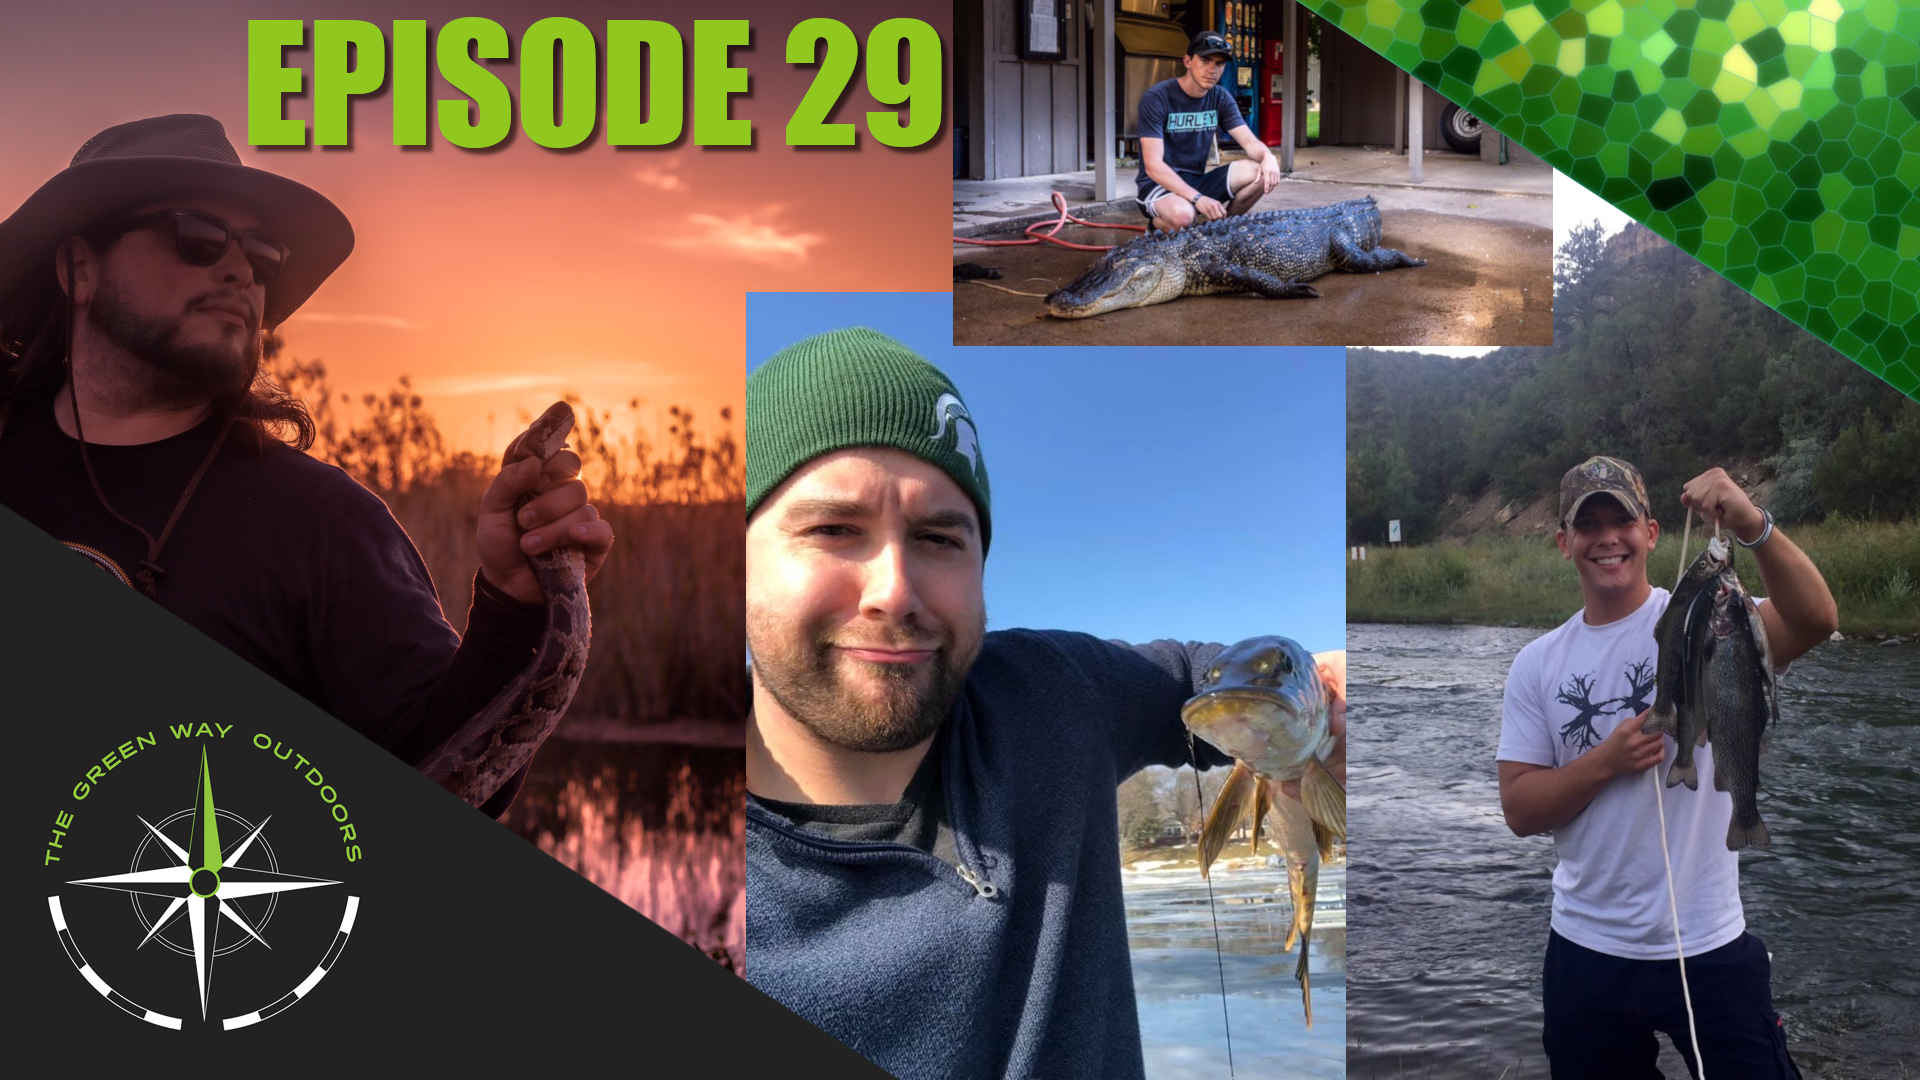 The Green Way Outdoors - Episode 29